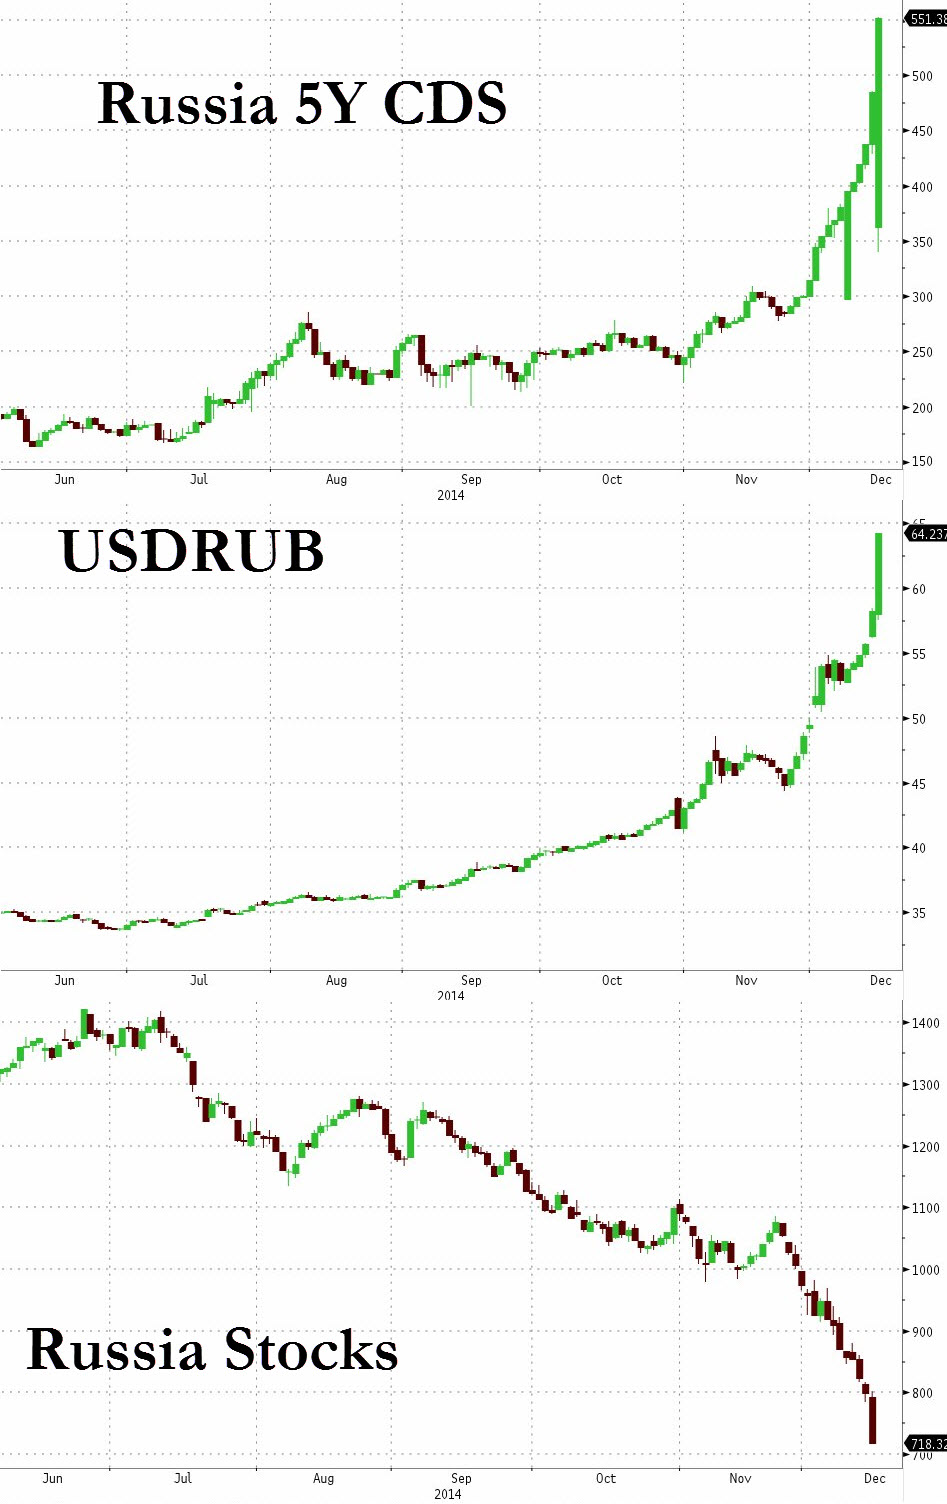 In this trifecta, we learn what a parabola looks like. USDRUB has rallied more than 1500 pips in half a month, and implied volatility is through Zeus's roof. The 5 year credit default spread on Russian sovereign debt is also surging (close to doubling in half a December) as hyperinflation and fast diminishing revenues from energy hit home hard on both the consumers and corporates; especially on energy and financials. The RTS index has also cratered with no light at the end of the tunnel